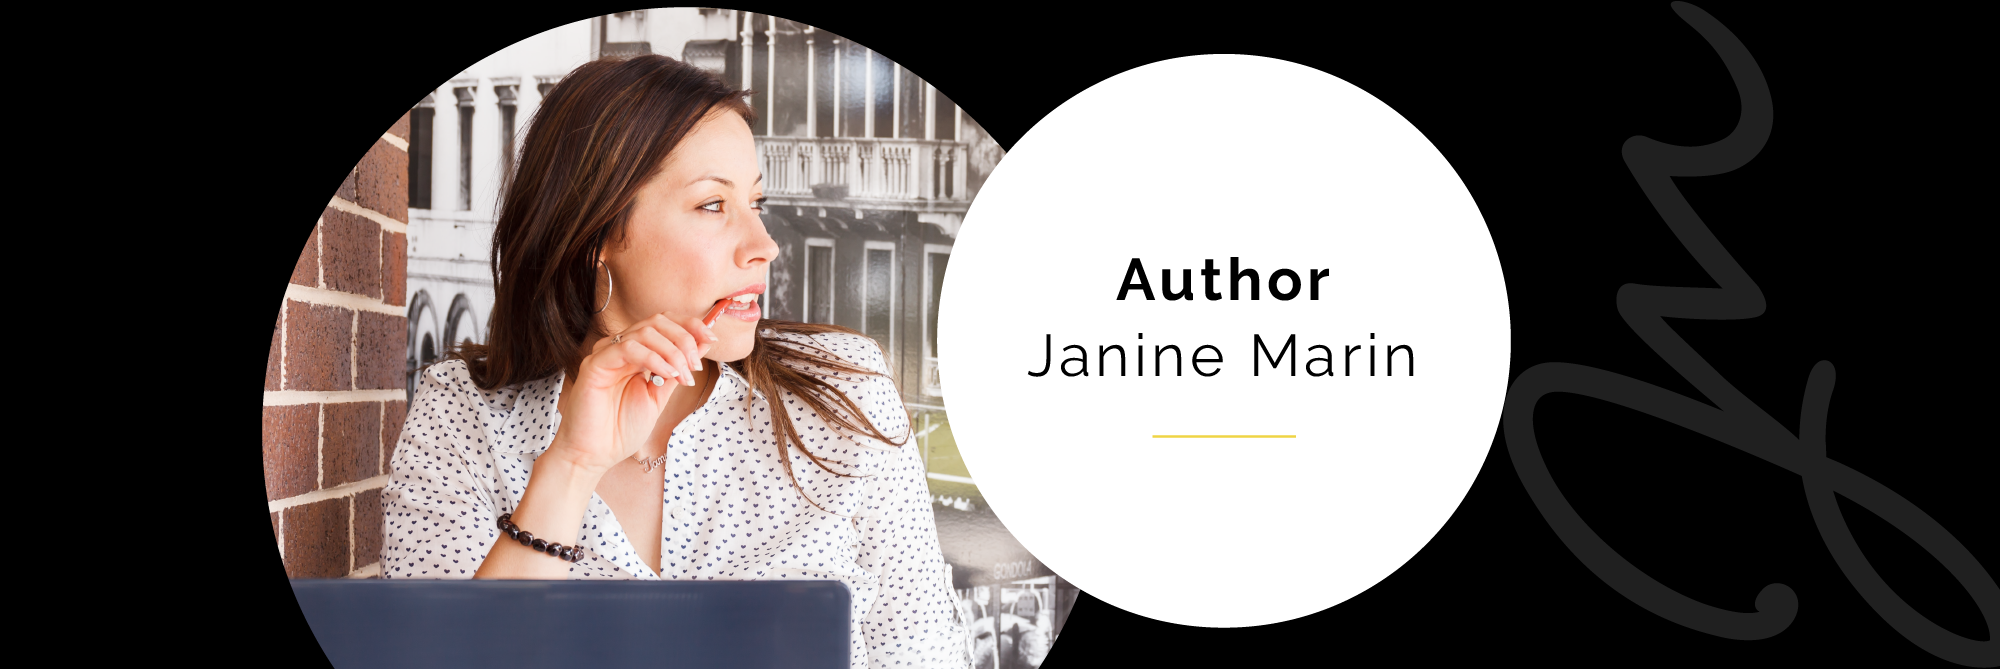 janine-marin-communications-author